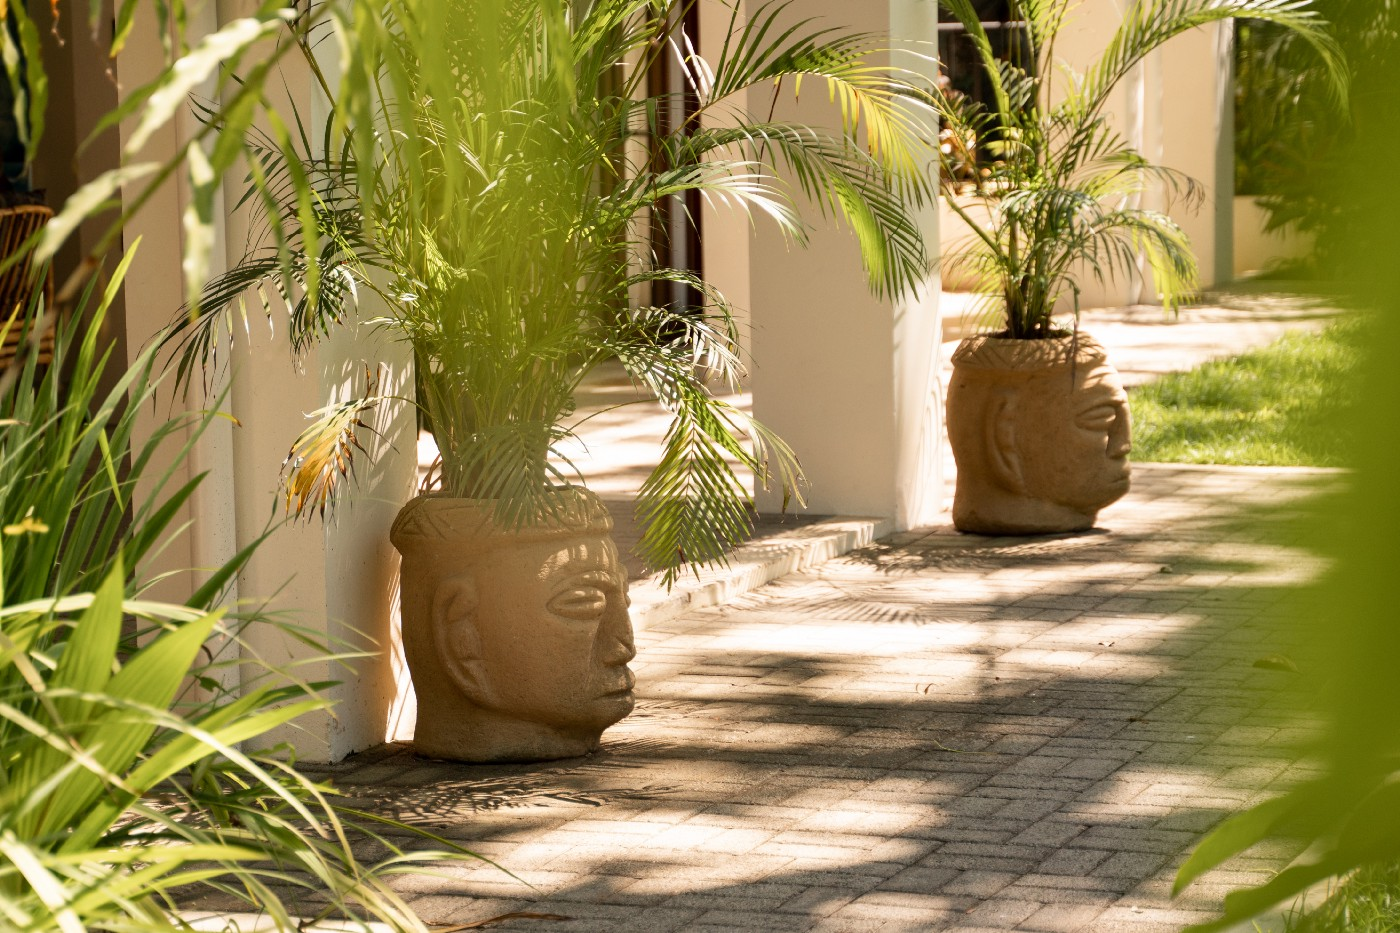 Locally made carved stone planters welcome guests at Hona Wellness in Dominical, Costa Rica. Project by New Utopia.